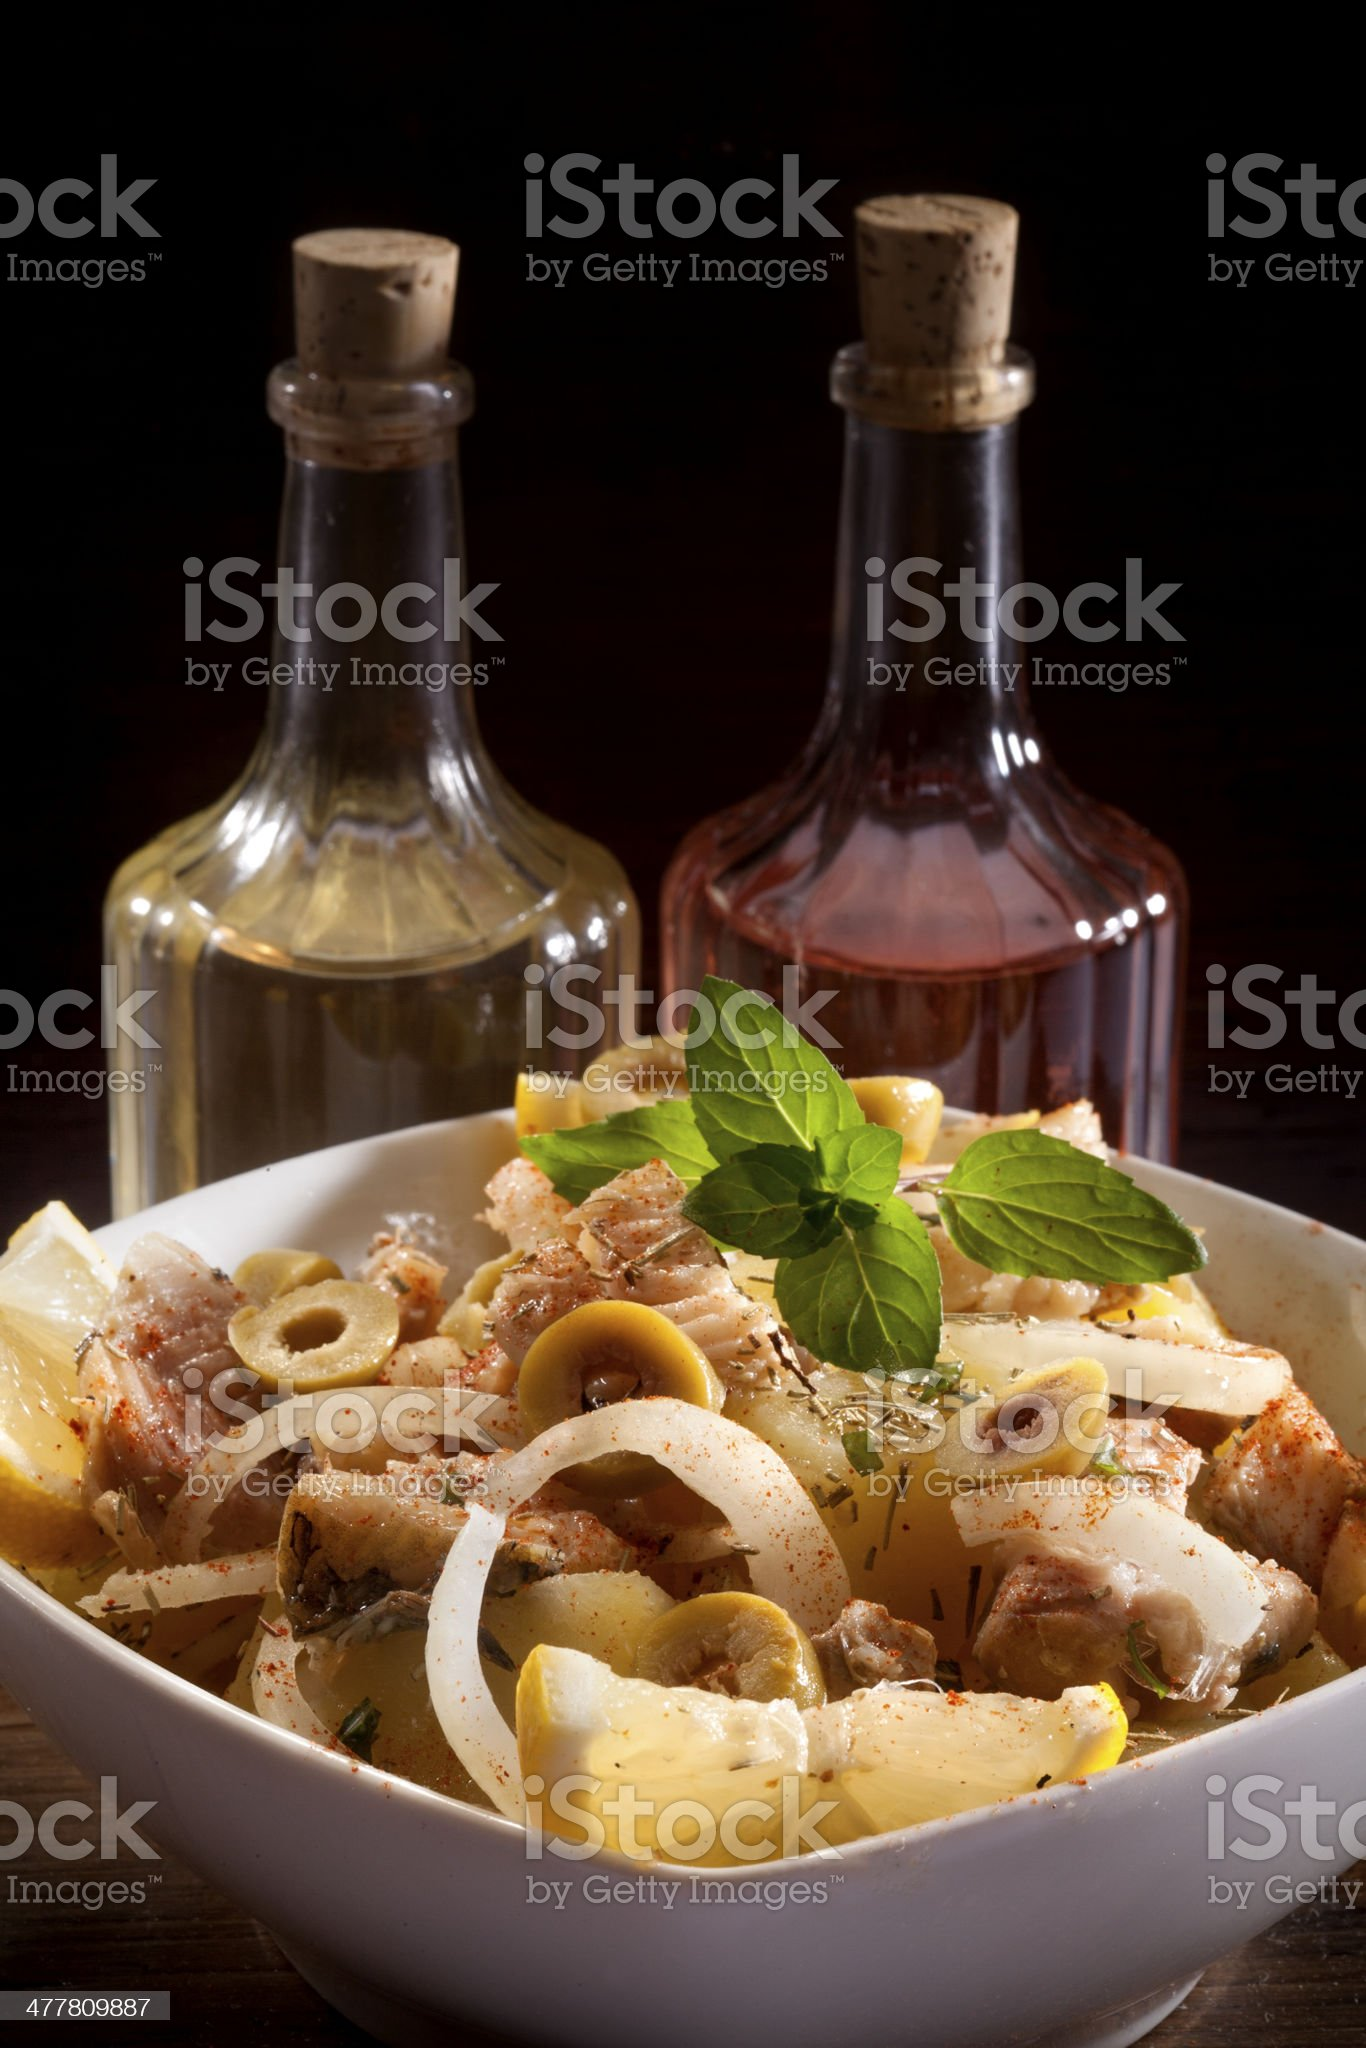 fish with potato salad royalty-free stock photo